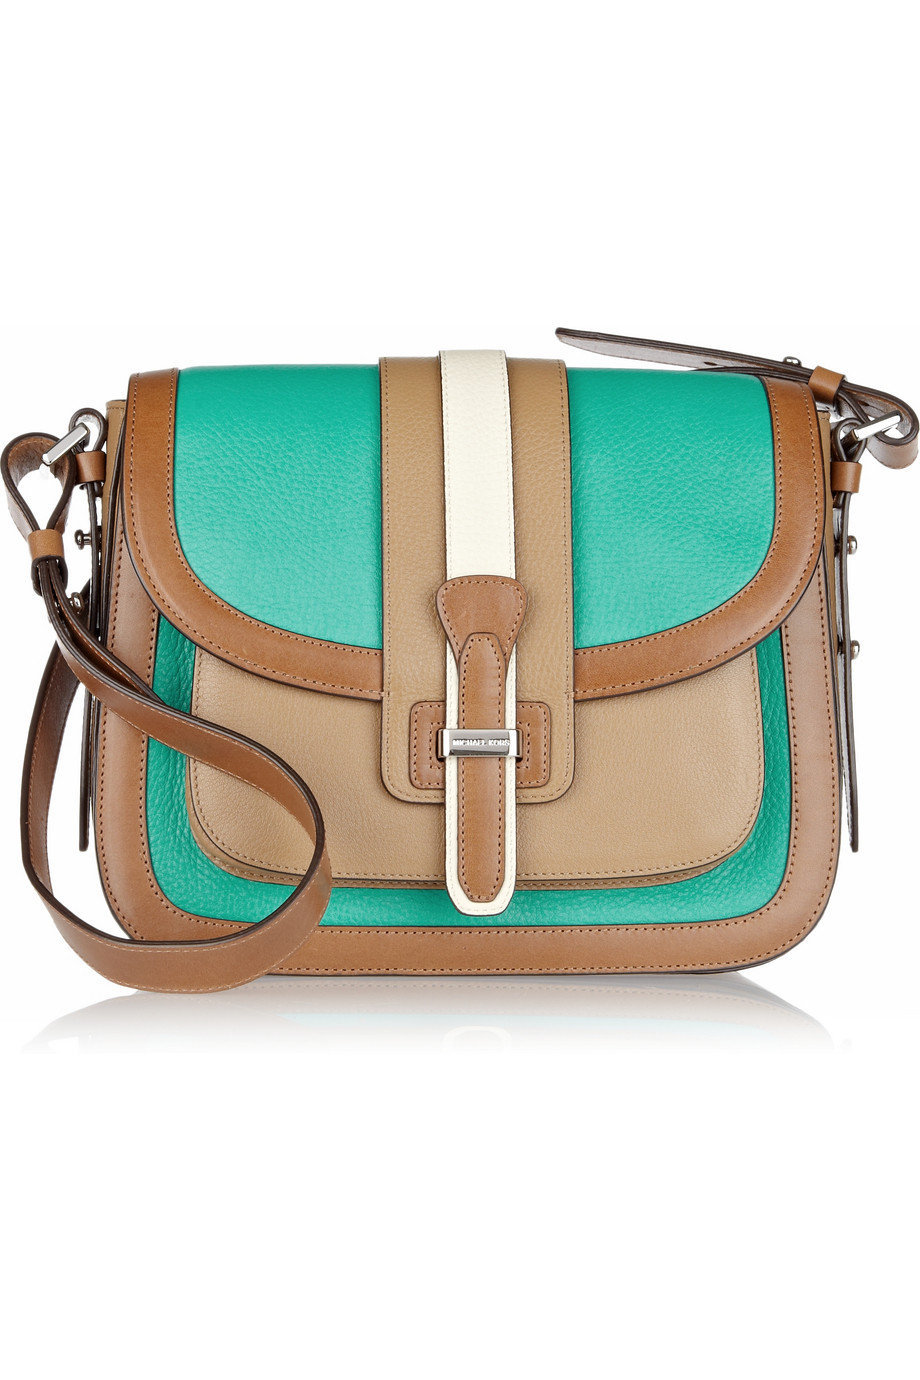 Michael Kors | Gia Saddle color-block leather shoulder bag | NET-A-PORTER.COM